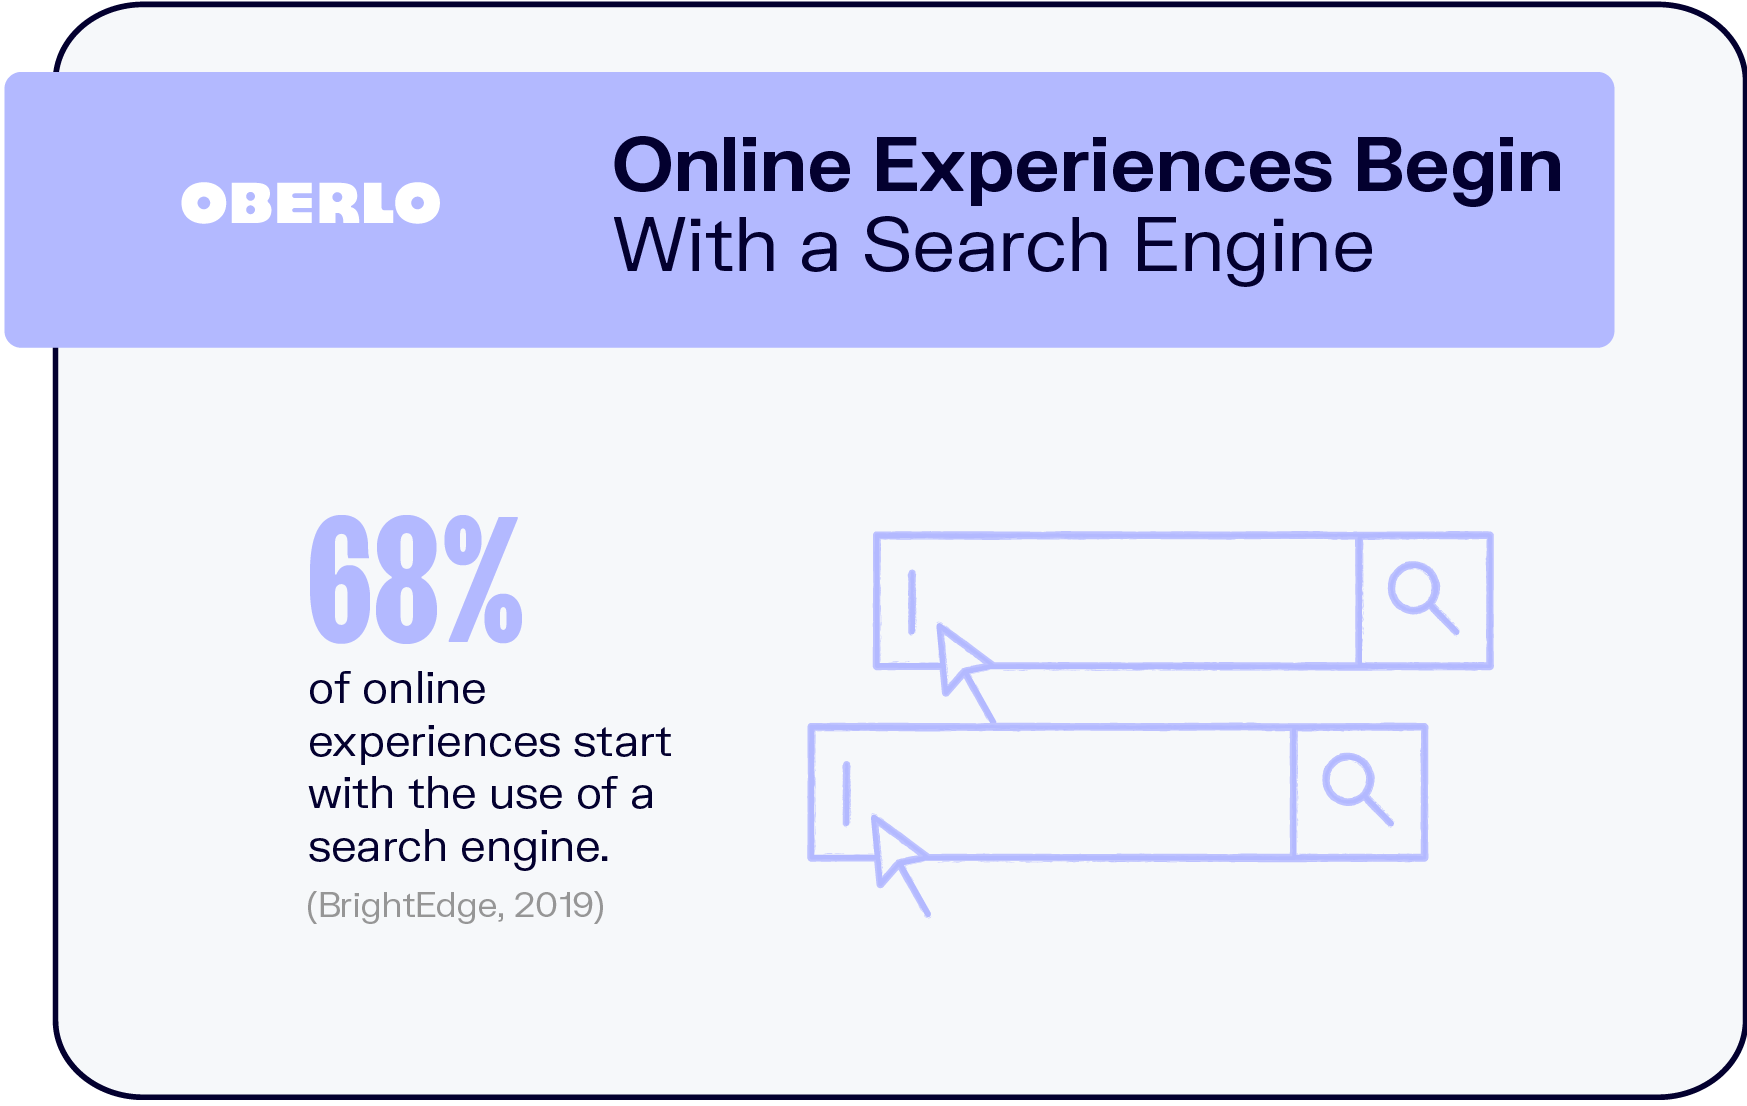 Online Experiences Begin With a Search Engine